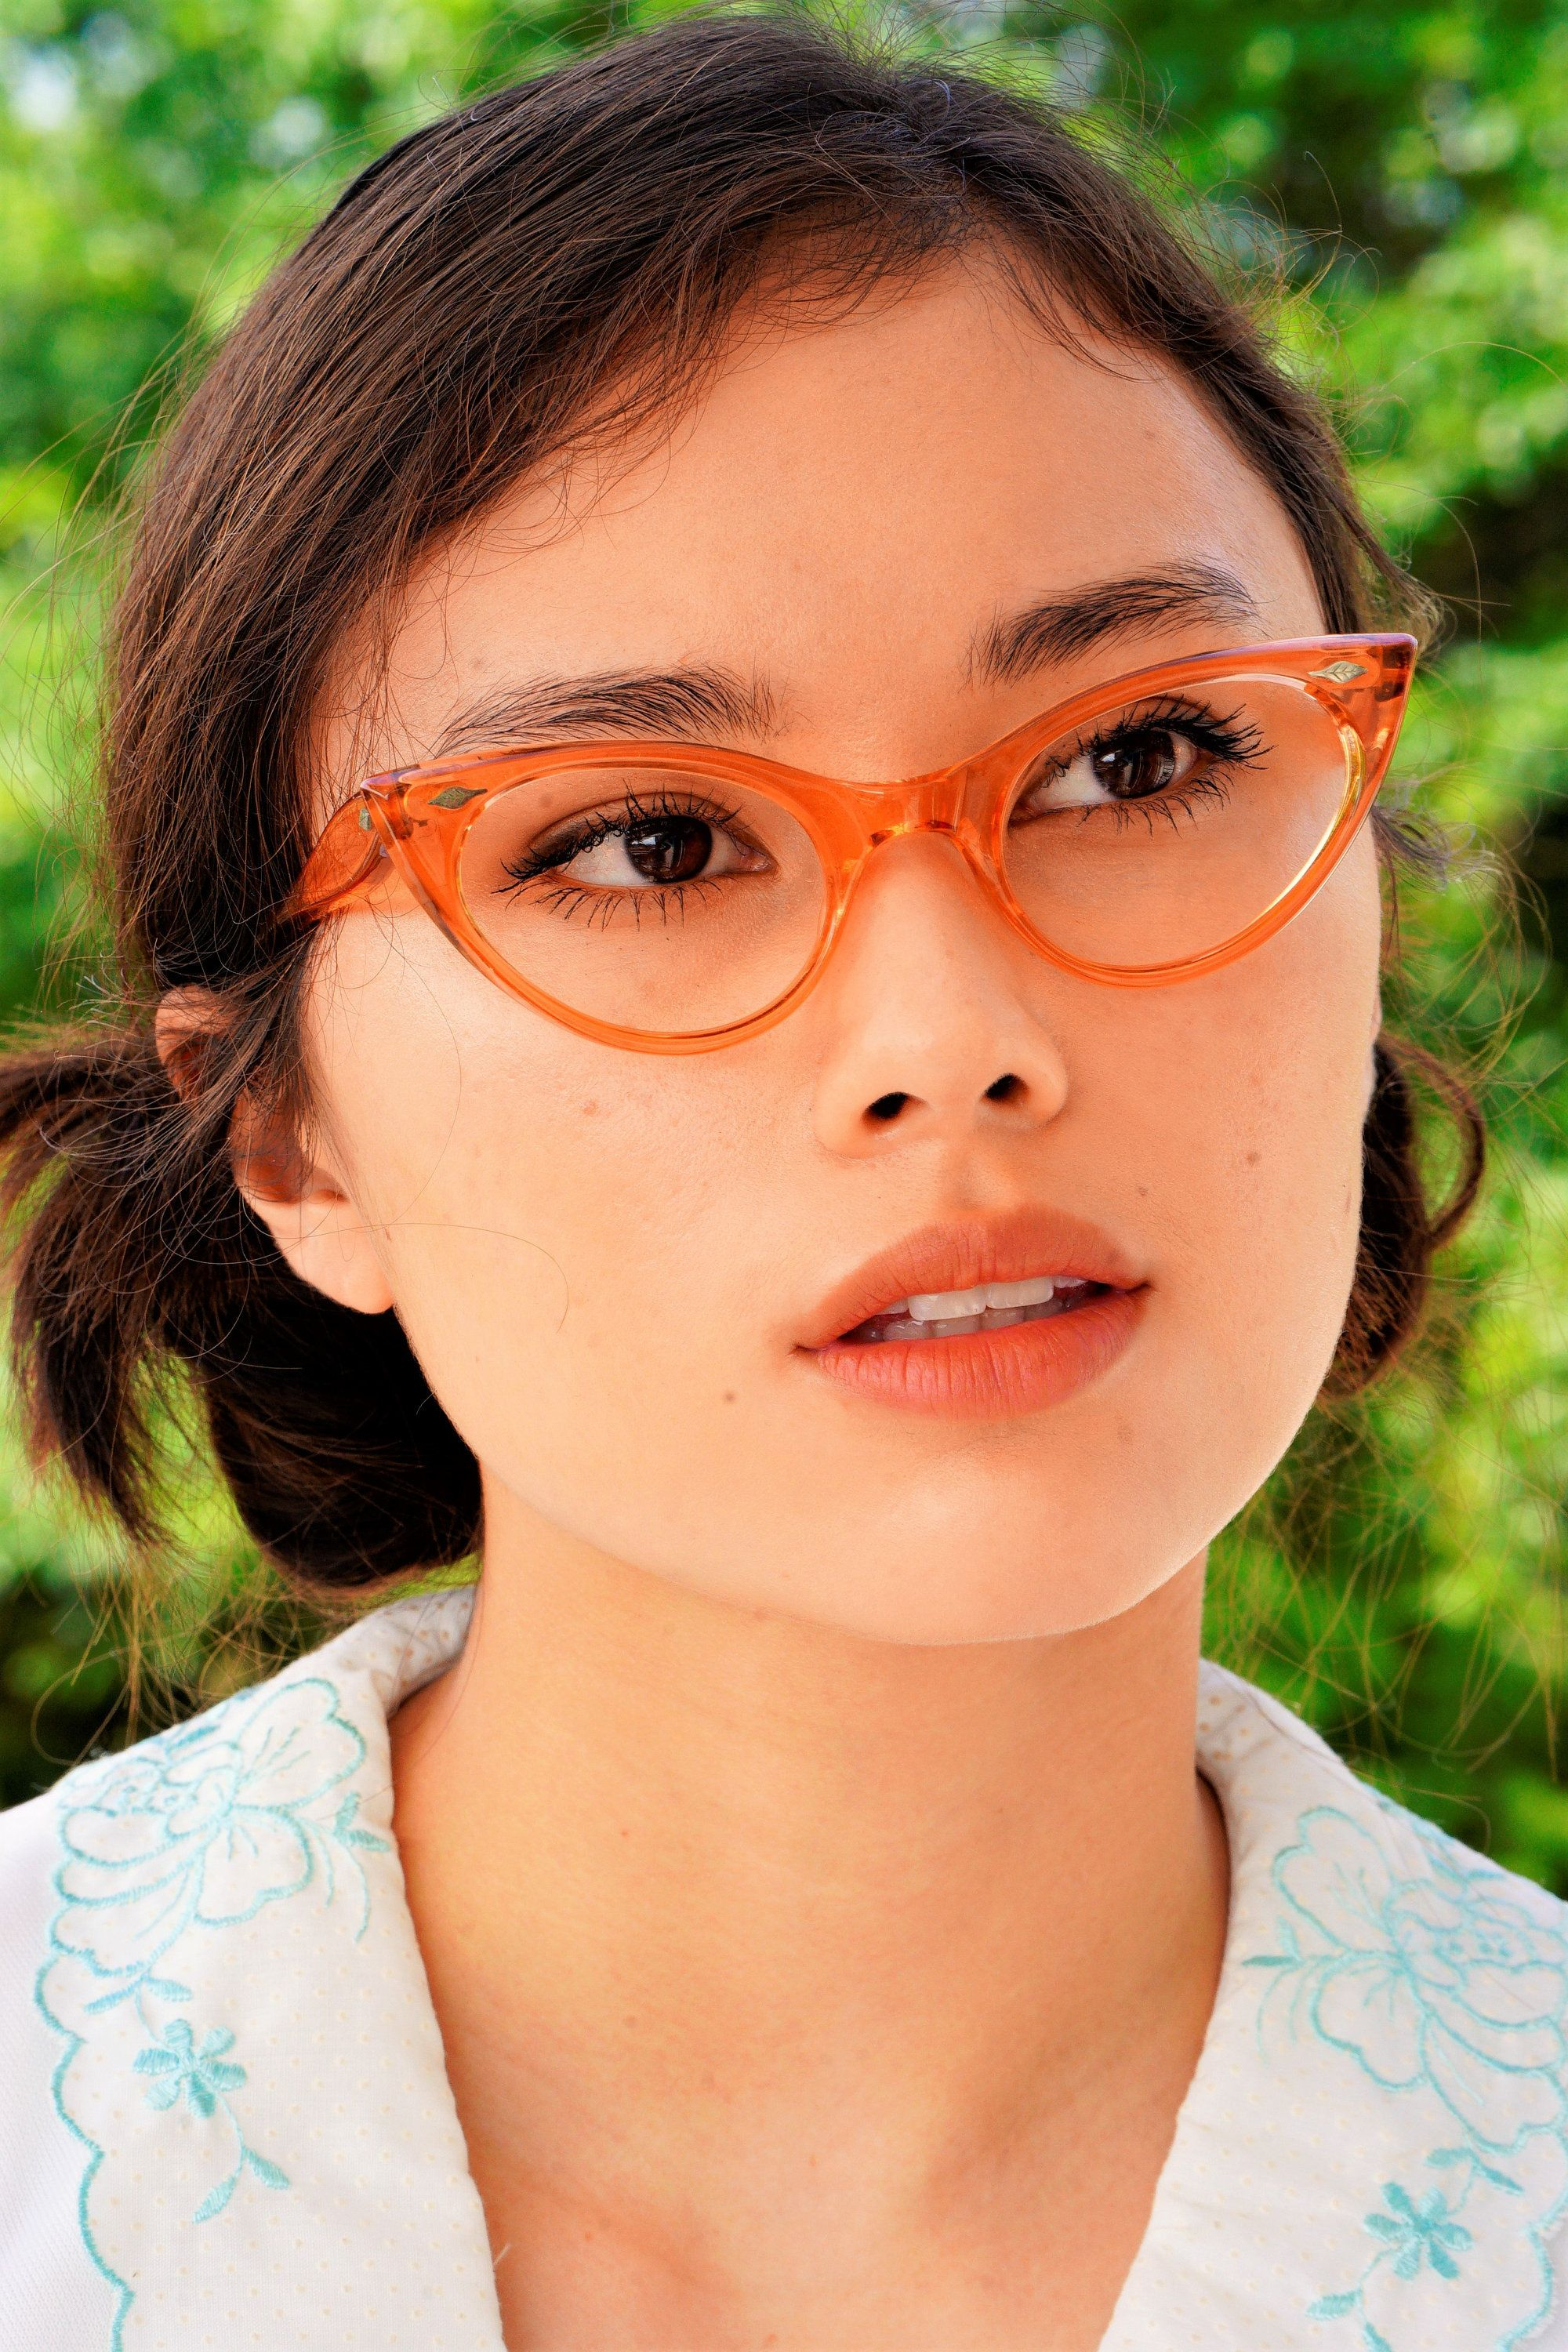 bff86b73226 ...  madei Vintage Cat Eye Glasses 1960s Cateye Frames Made in USA  Translucent Tone eyeglasses New Old Stock Rockabilly Pinup by  hisandhervintage on Etsy